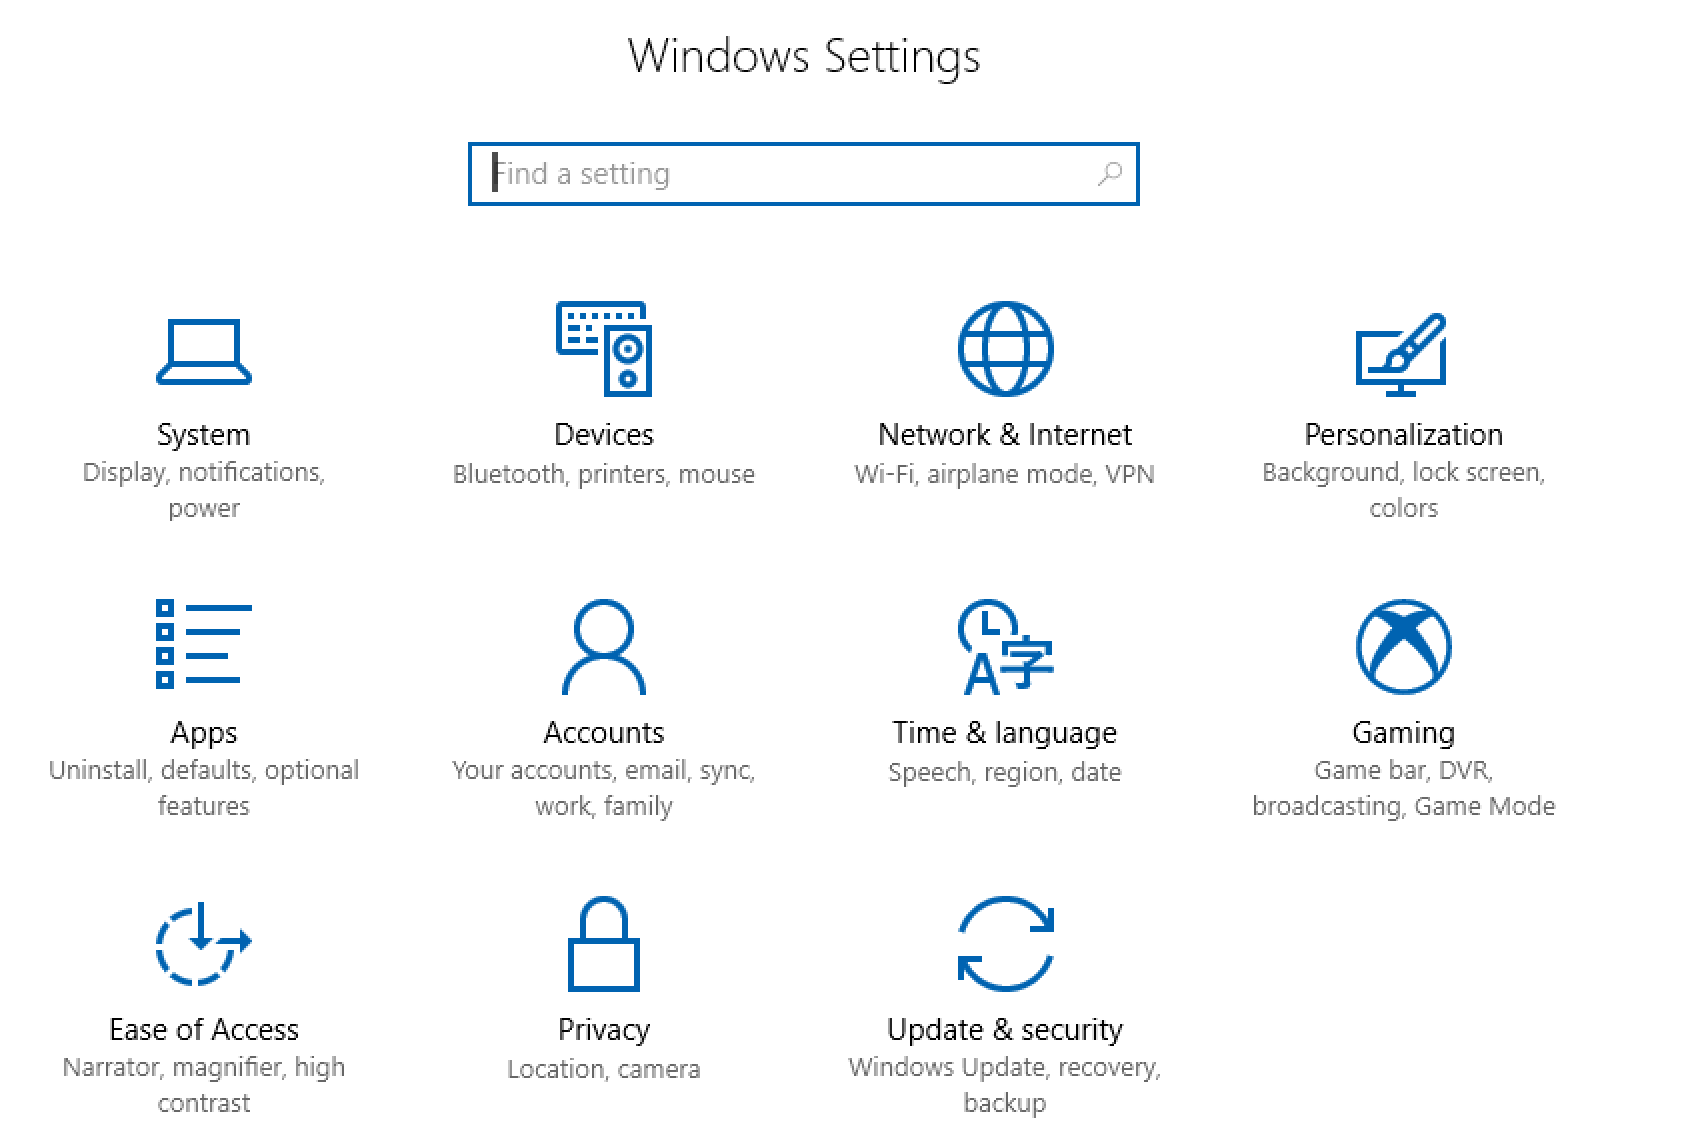 windows 10 win10 system preferences control settings panel